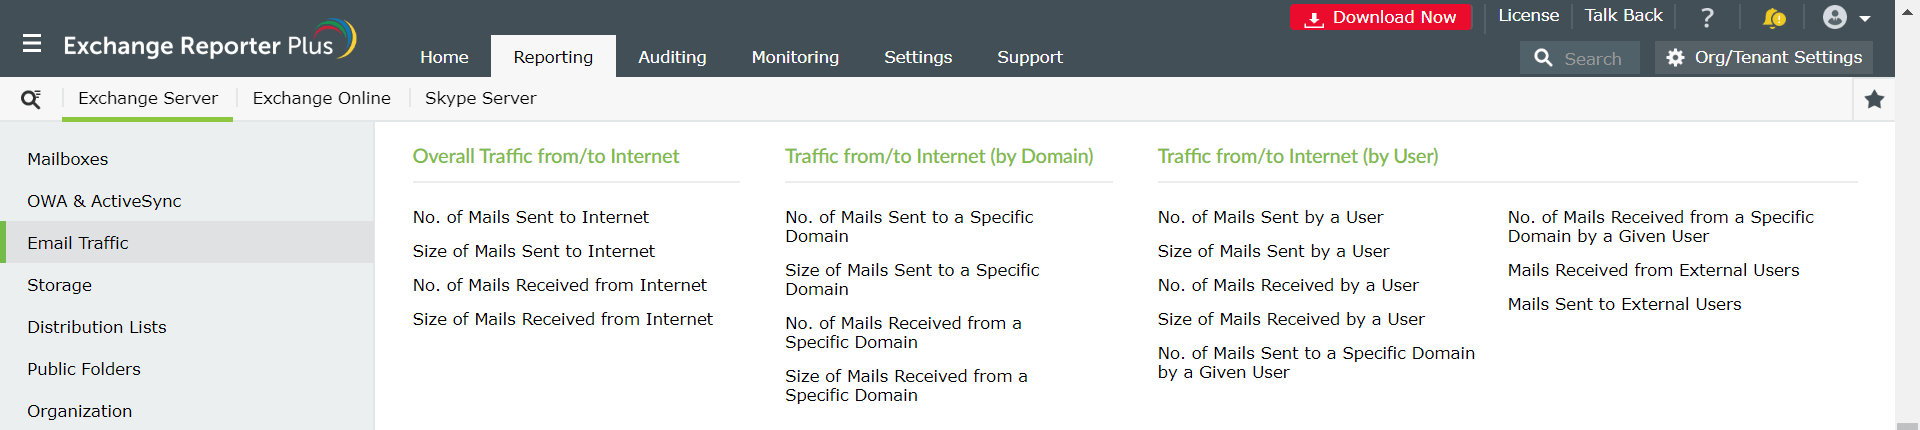 exchange-overall-internet-traffic-reports